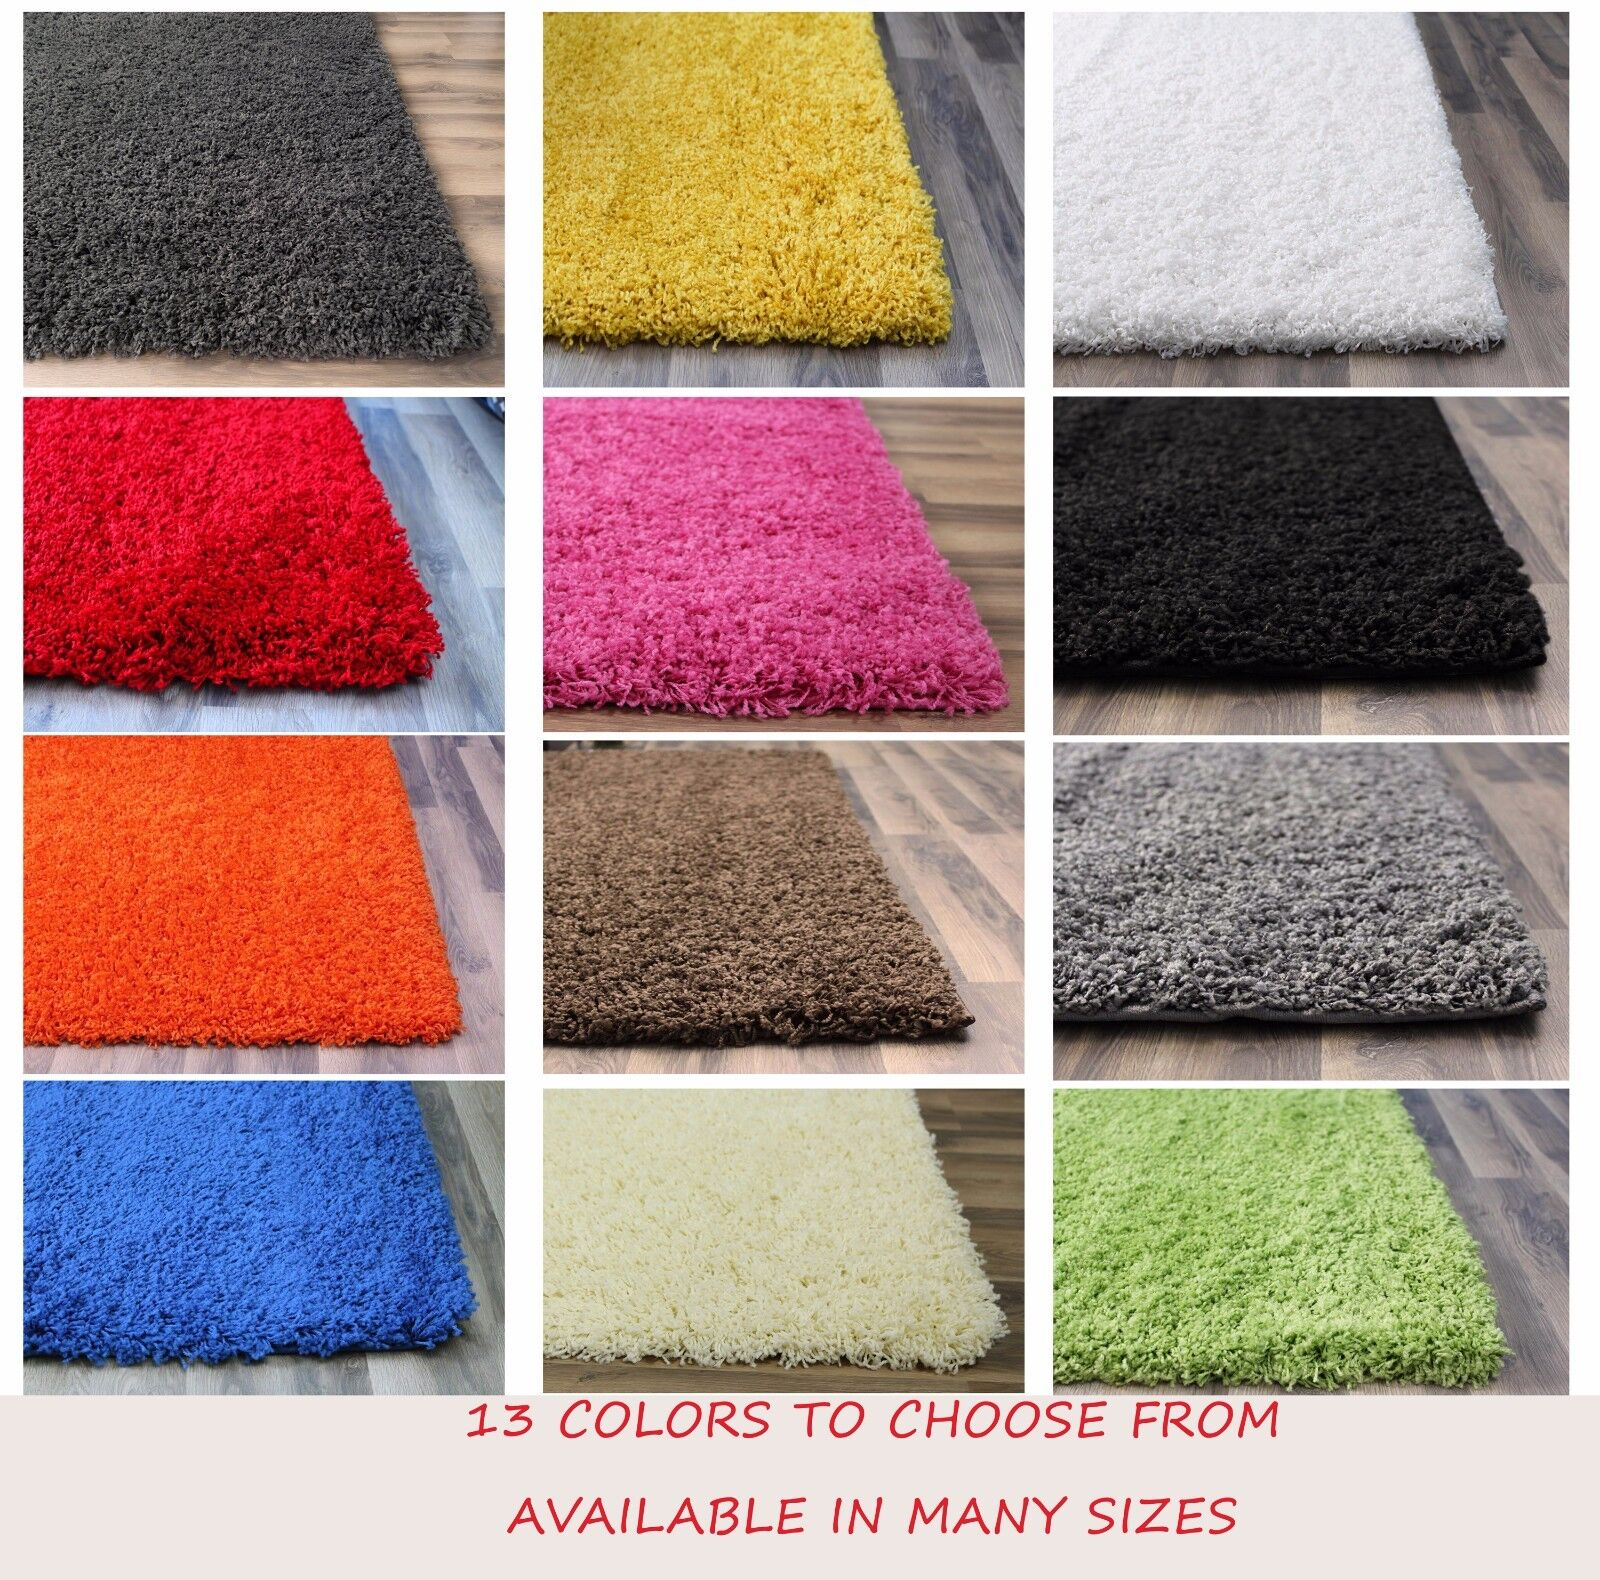 solid shag area rug in 5x8 8x10 3x5 4x6 white black red yell